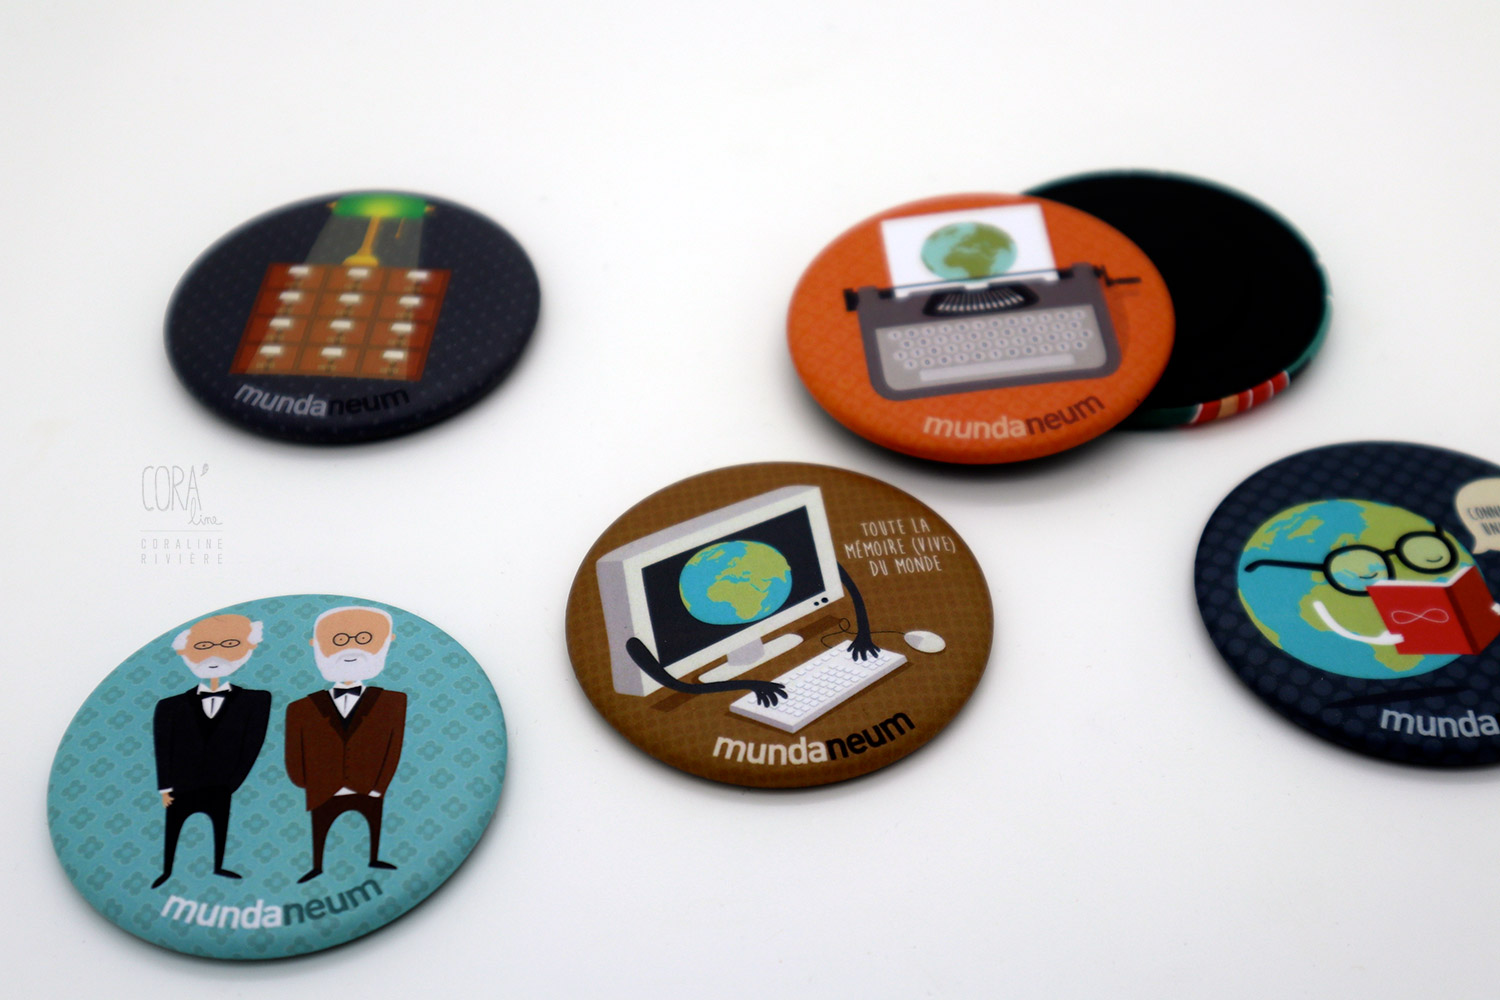 magnet badges paul otlet henri lafontaine illustrations mundaneum mons1